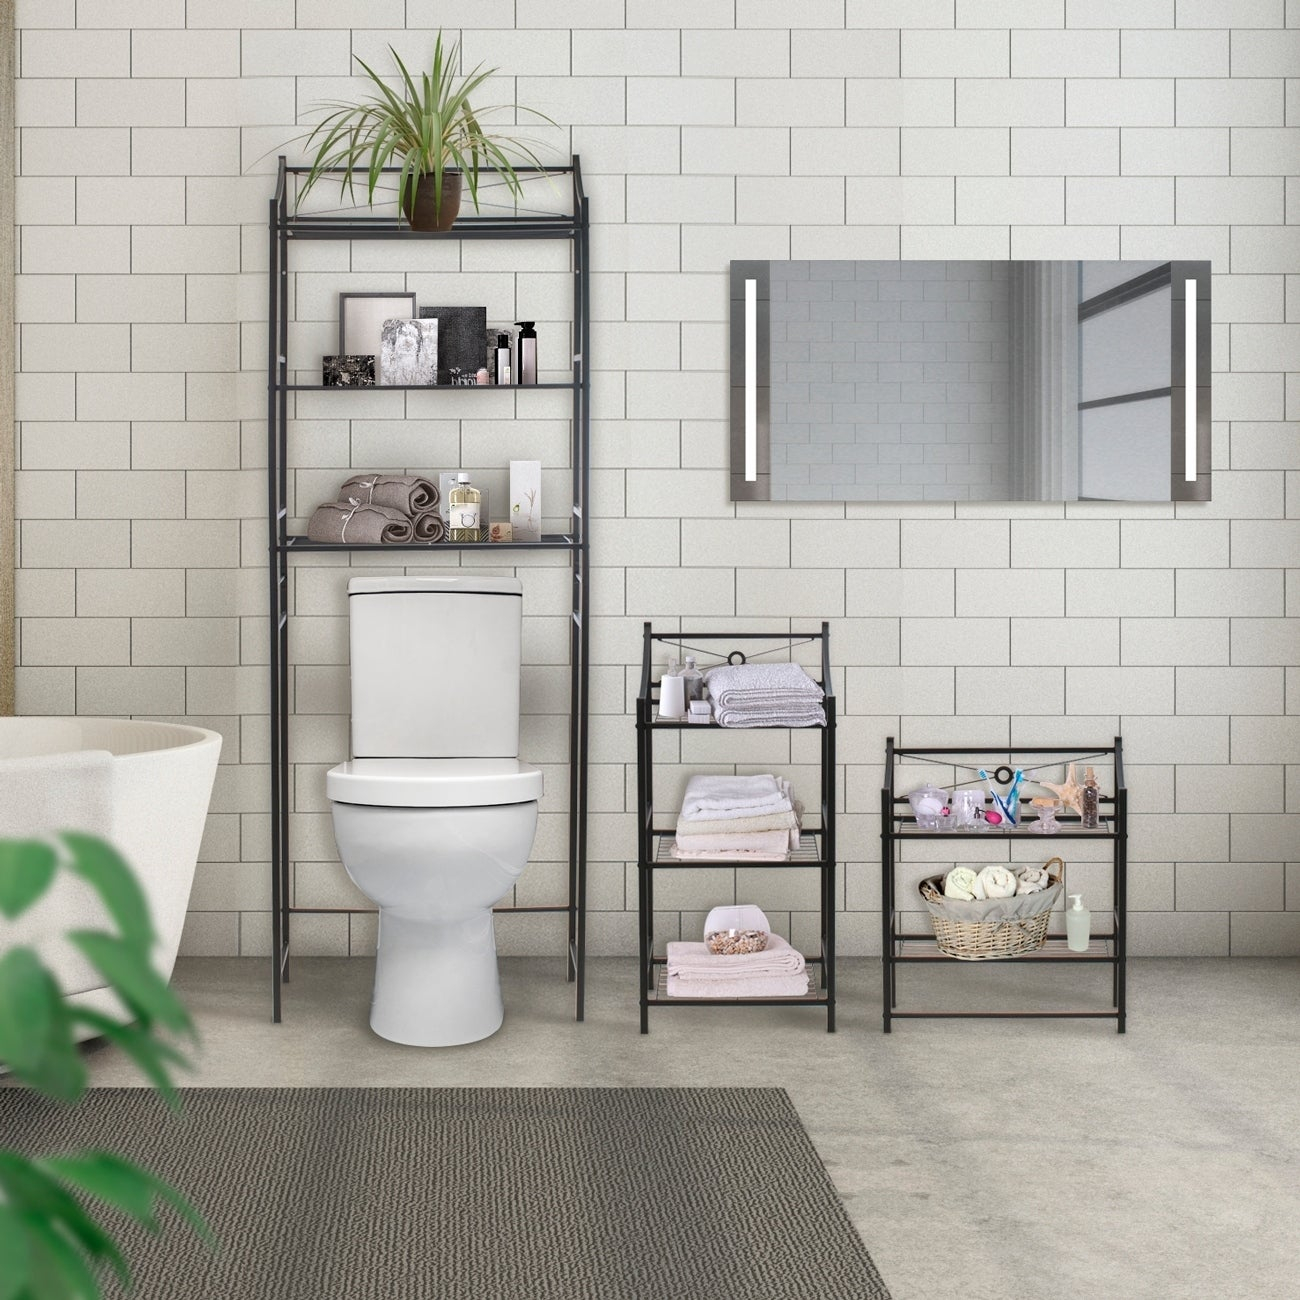 Sorbus Bathroom Storage Shelf Freestanding Shelves For Bath Essentials Planters Books And Much More regarding size 1300 X 1300